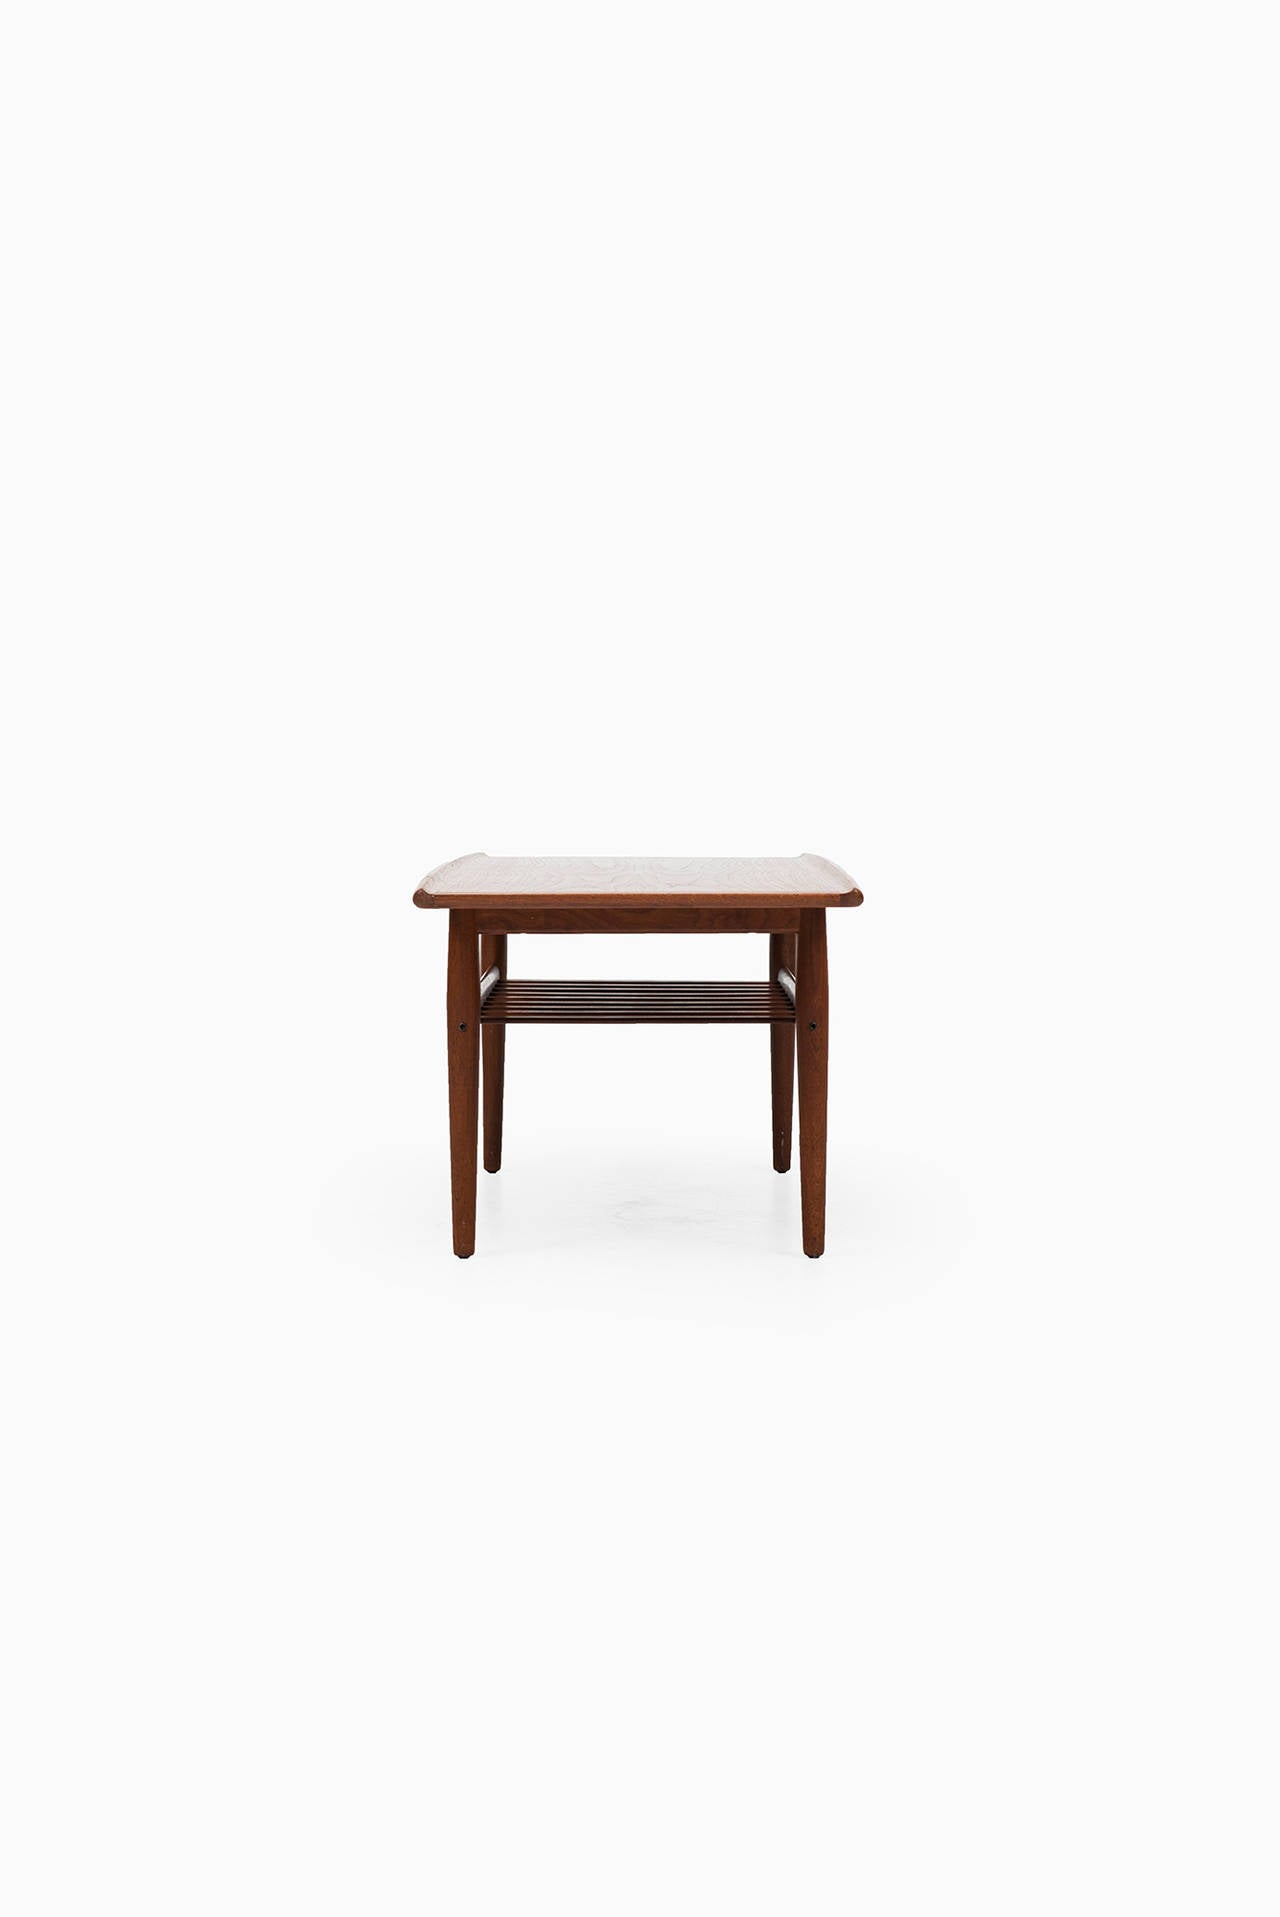 Danish Grete Jalk Coffee Table in Teak by Glostrup Møbelfabrik in Denmark For Sale